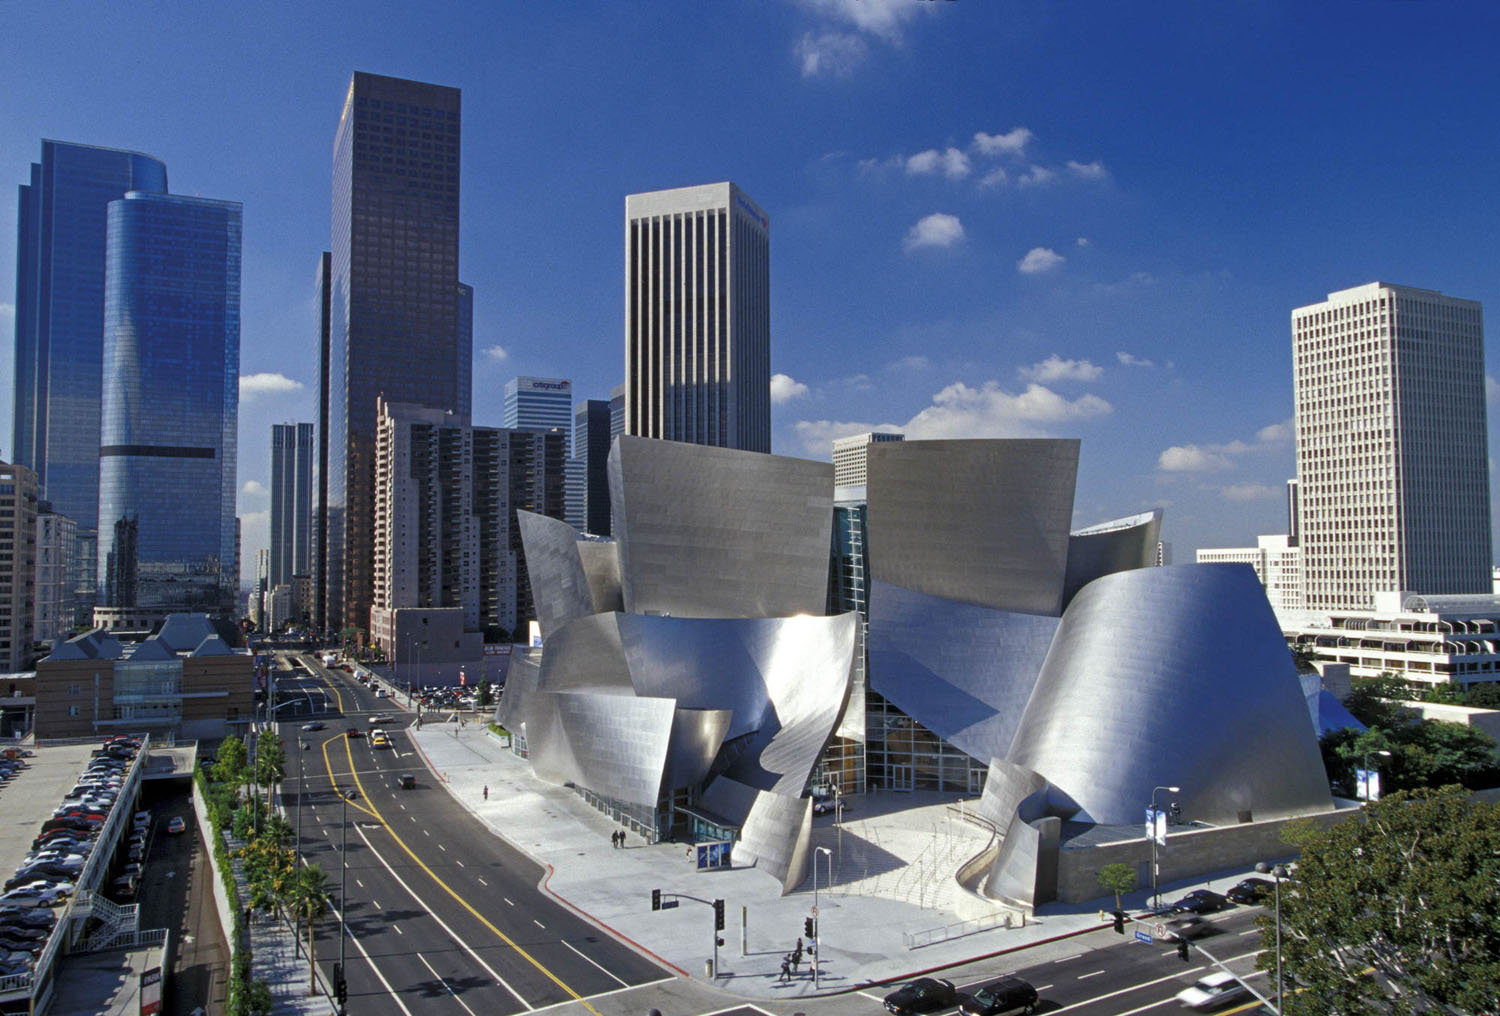 mm_Walt Disney Concert Hall design by Frank Gehry_03